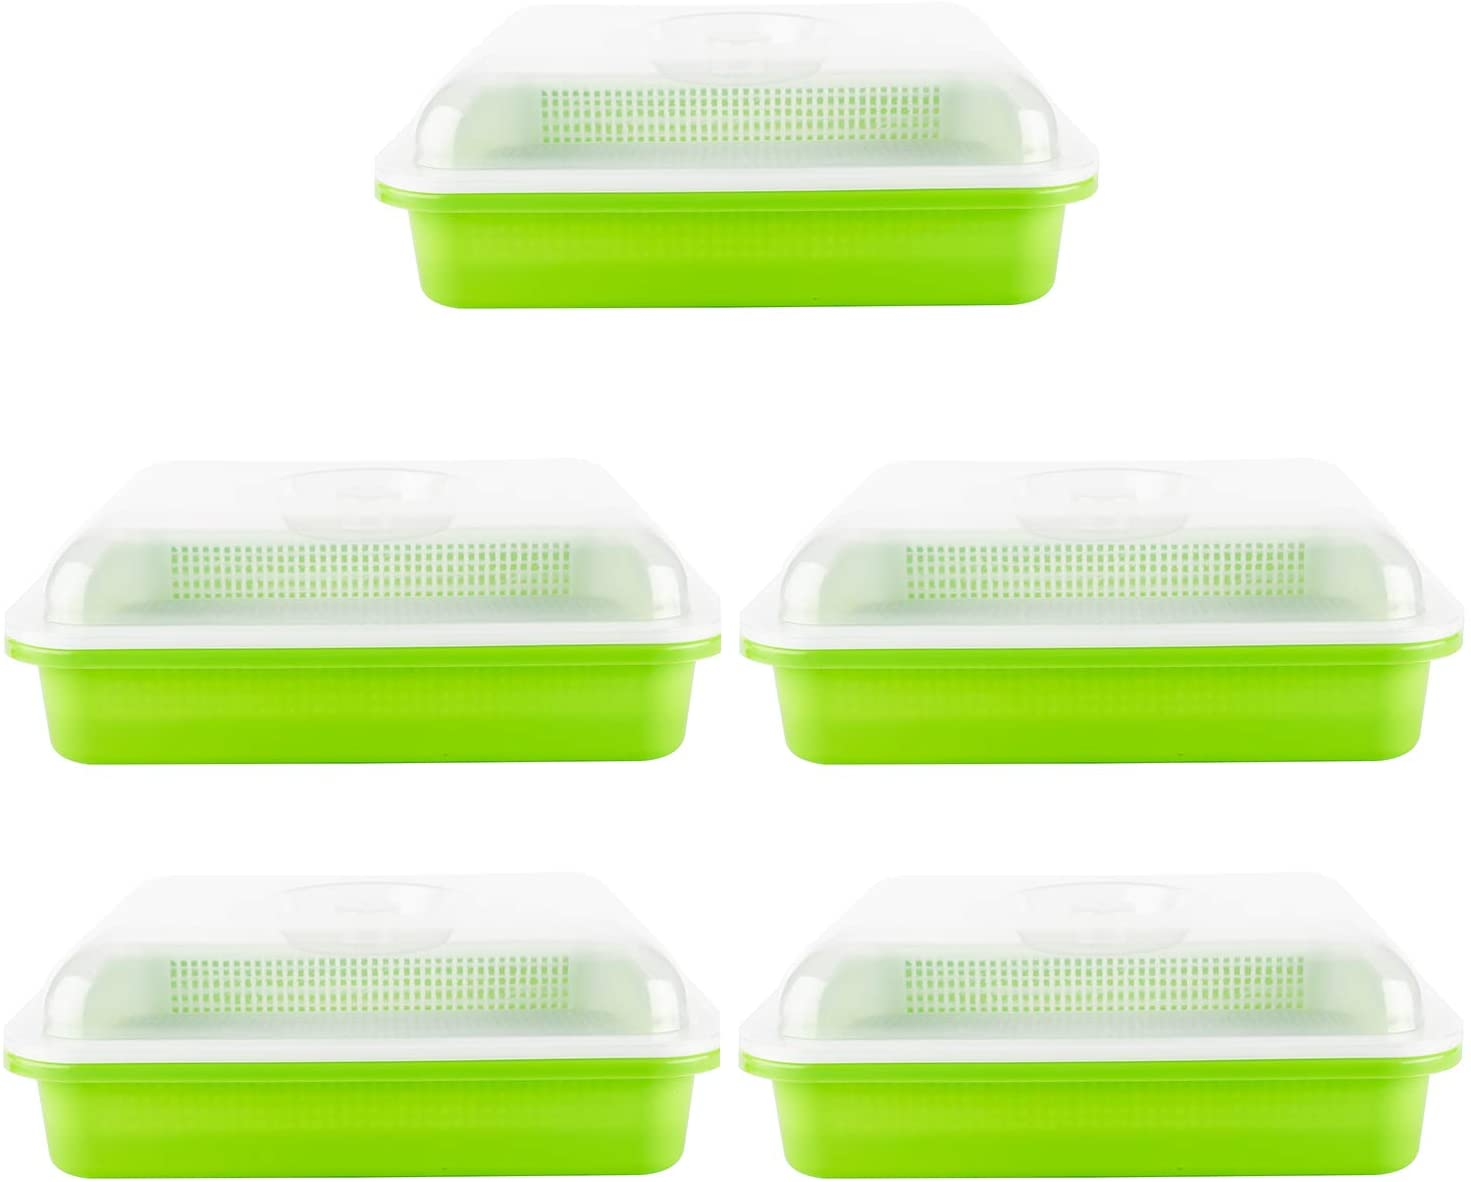 Artilife Seed Sprouter Tray BPA Free PP Soil-Free Big Capacity Healthy Wheatgrass Grower with Lid Sprouting Kit for Garden Home Office (5)